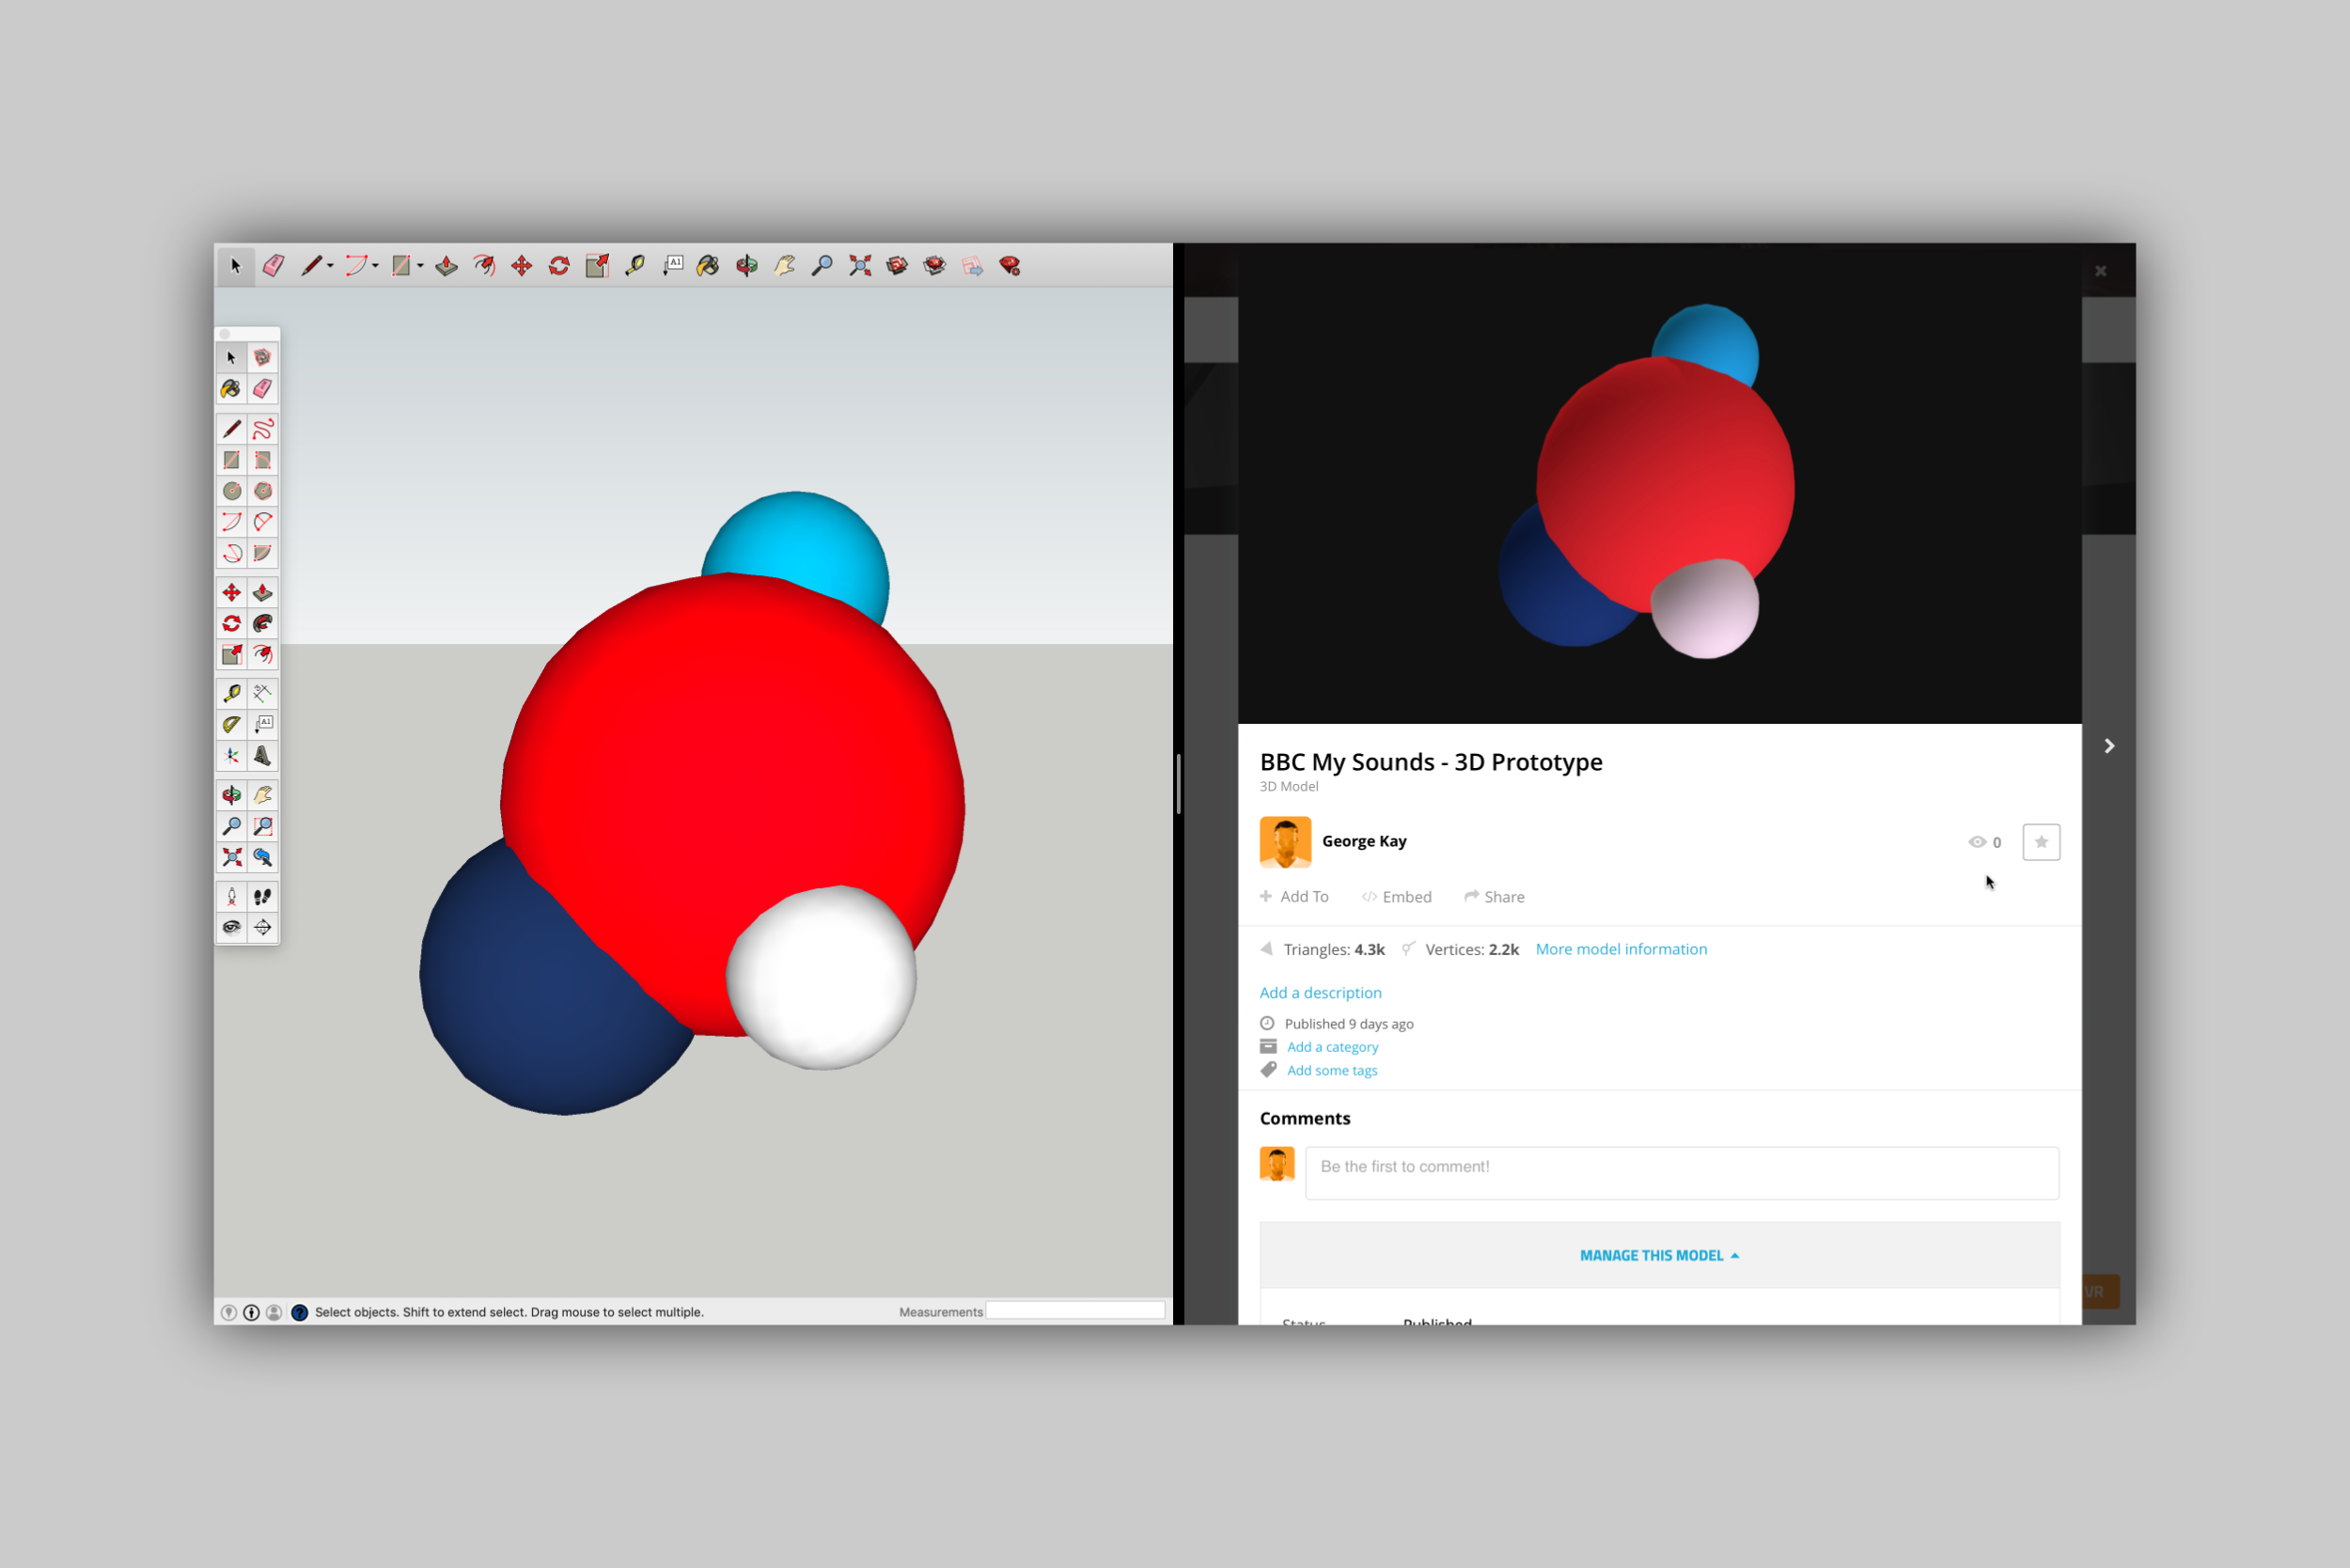 Building and embedding a working 3D model using SketchUp and Sketchfab